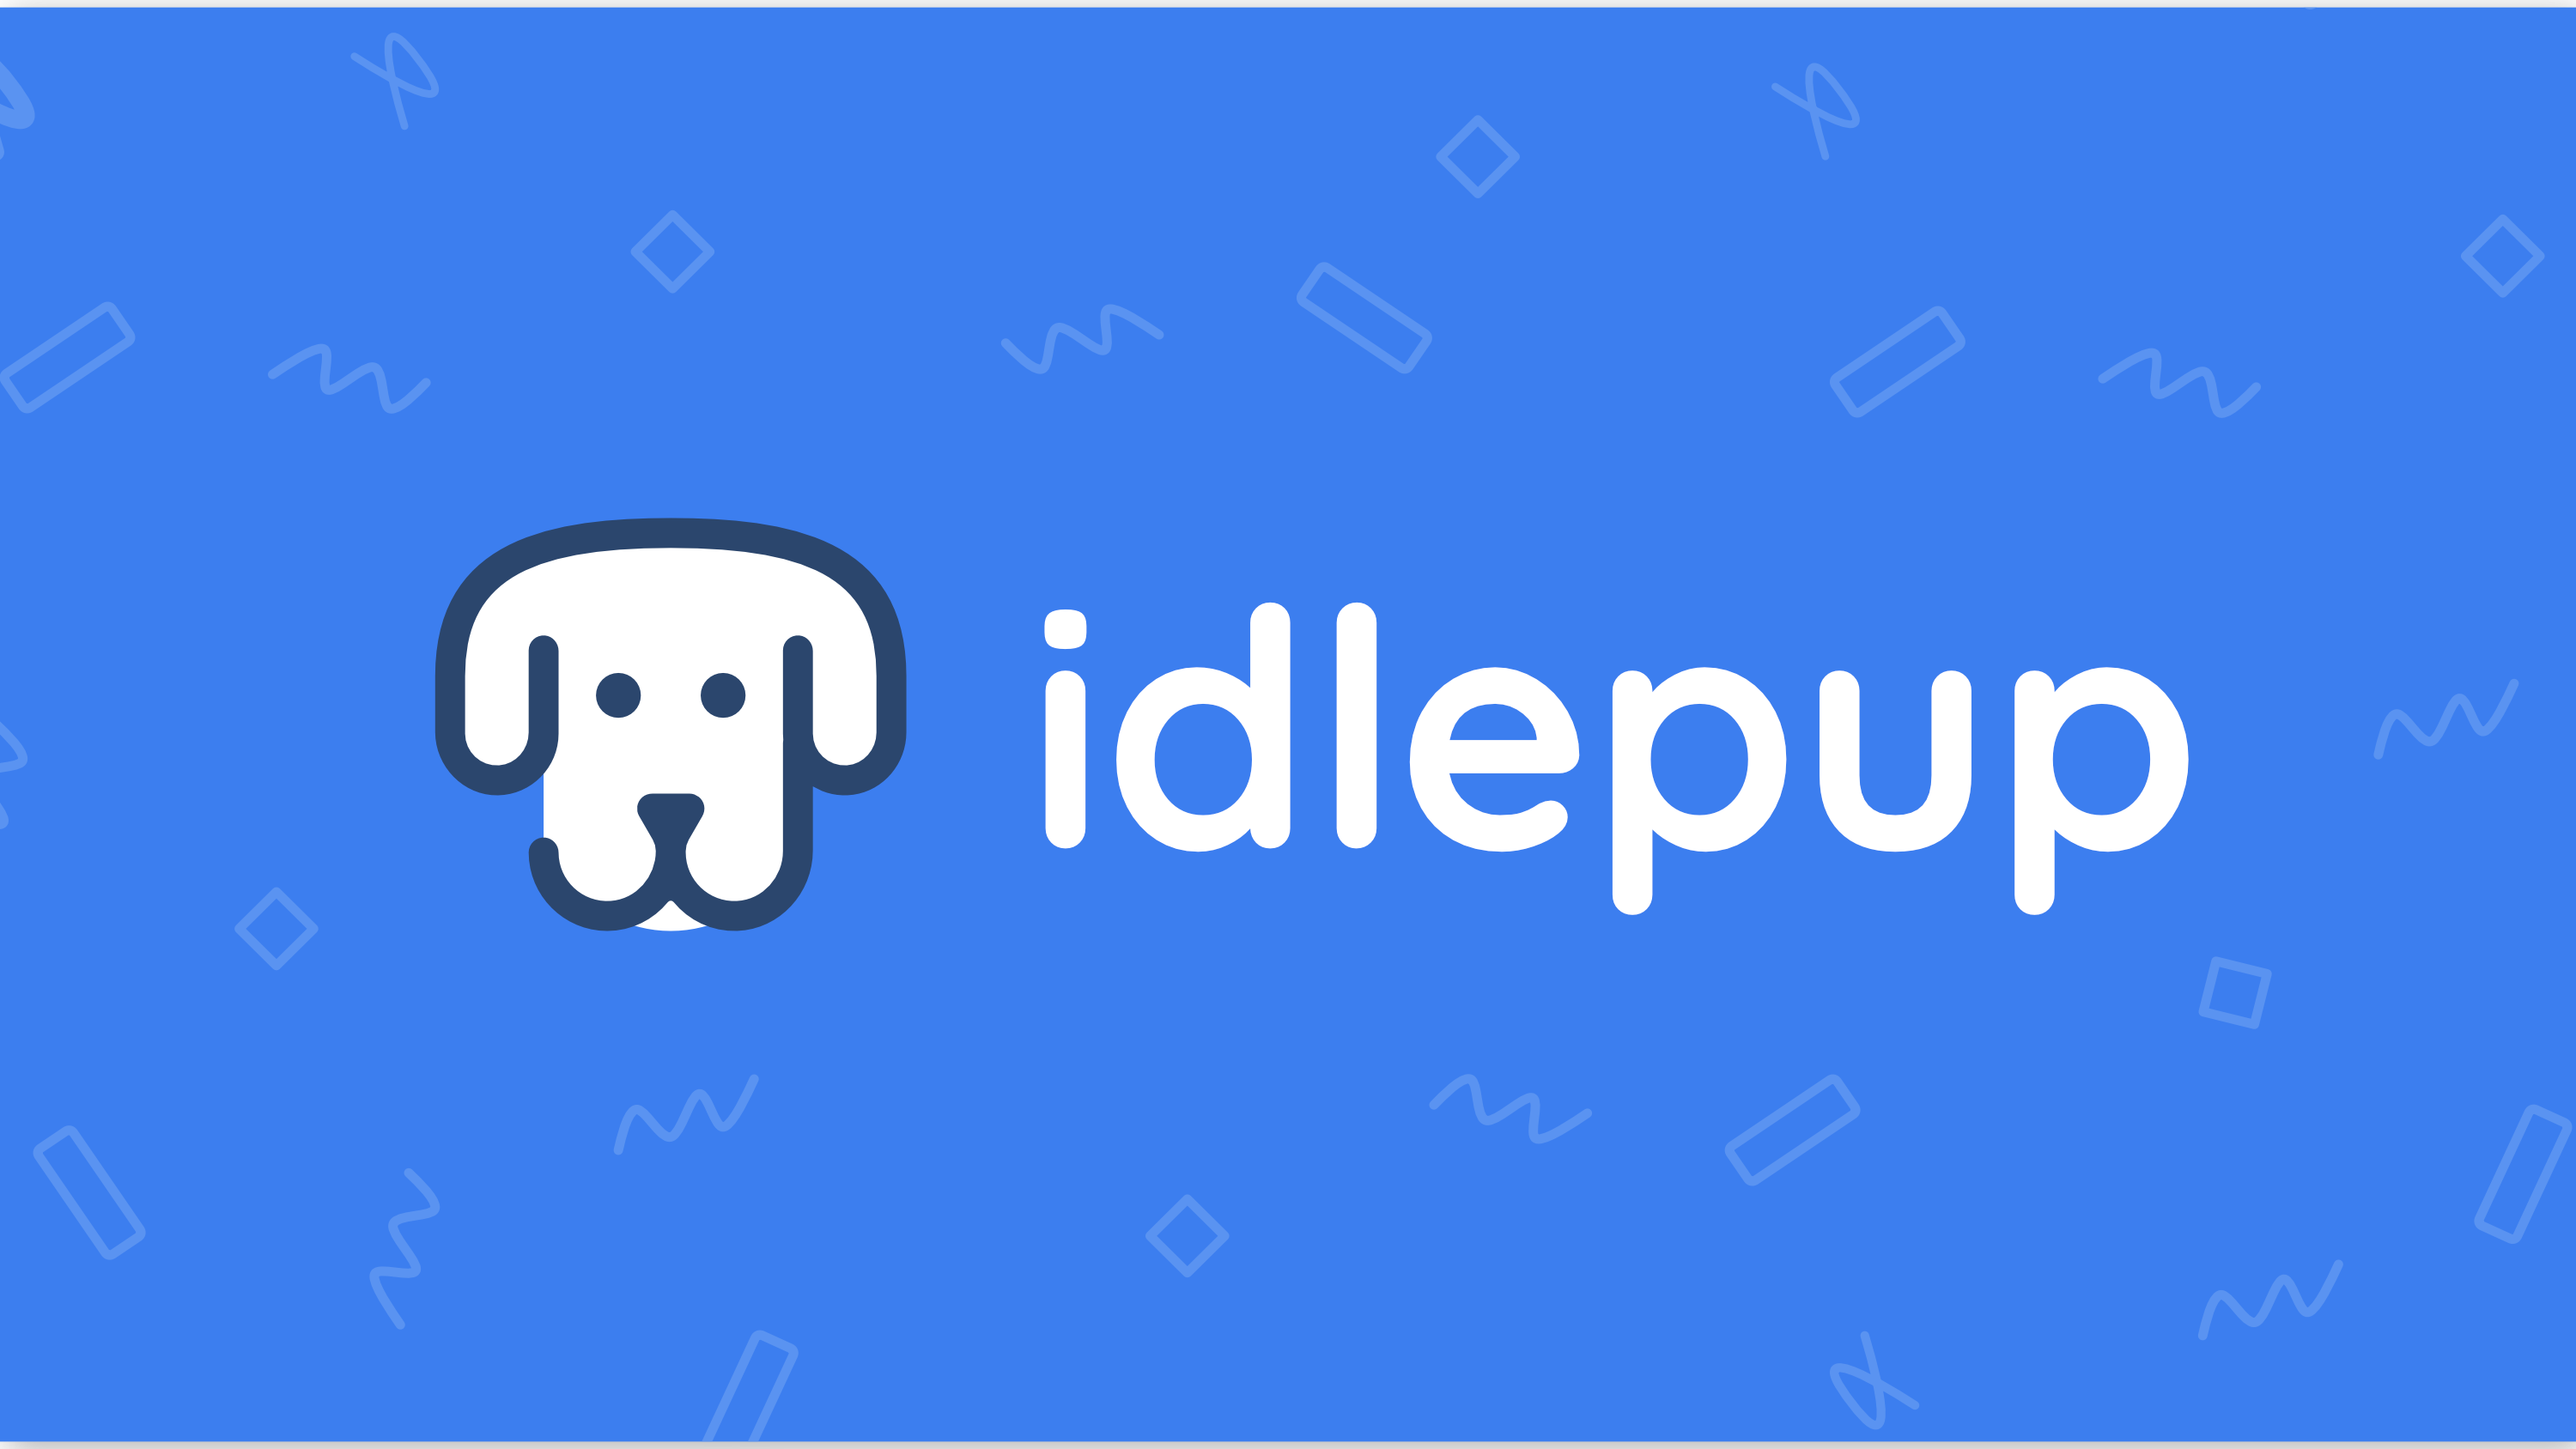 About The Idle Pup